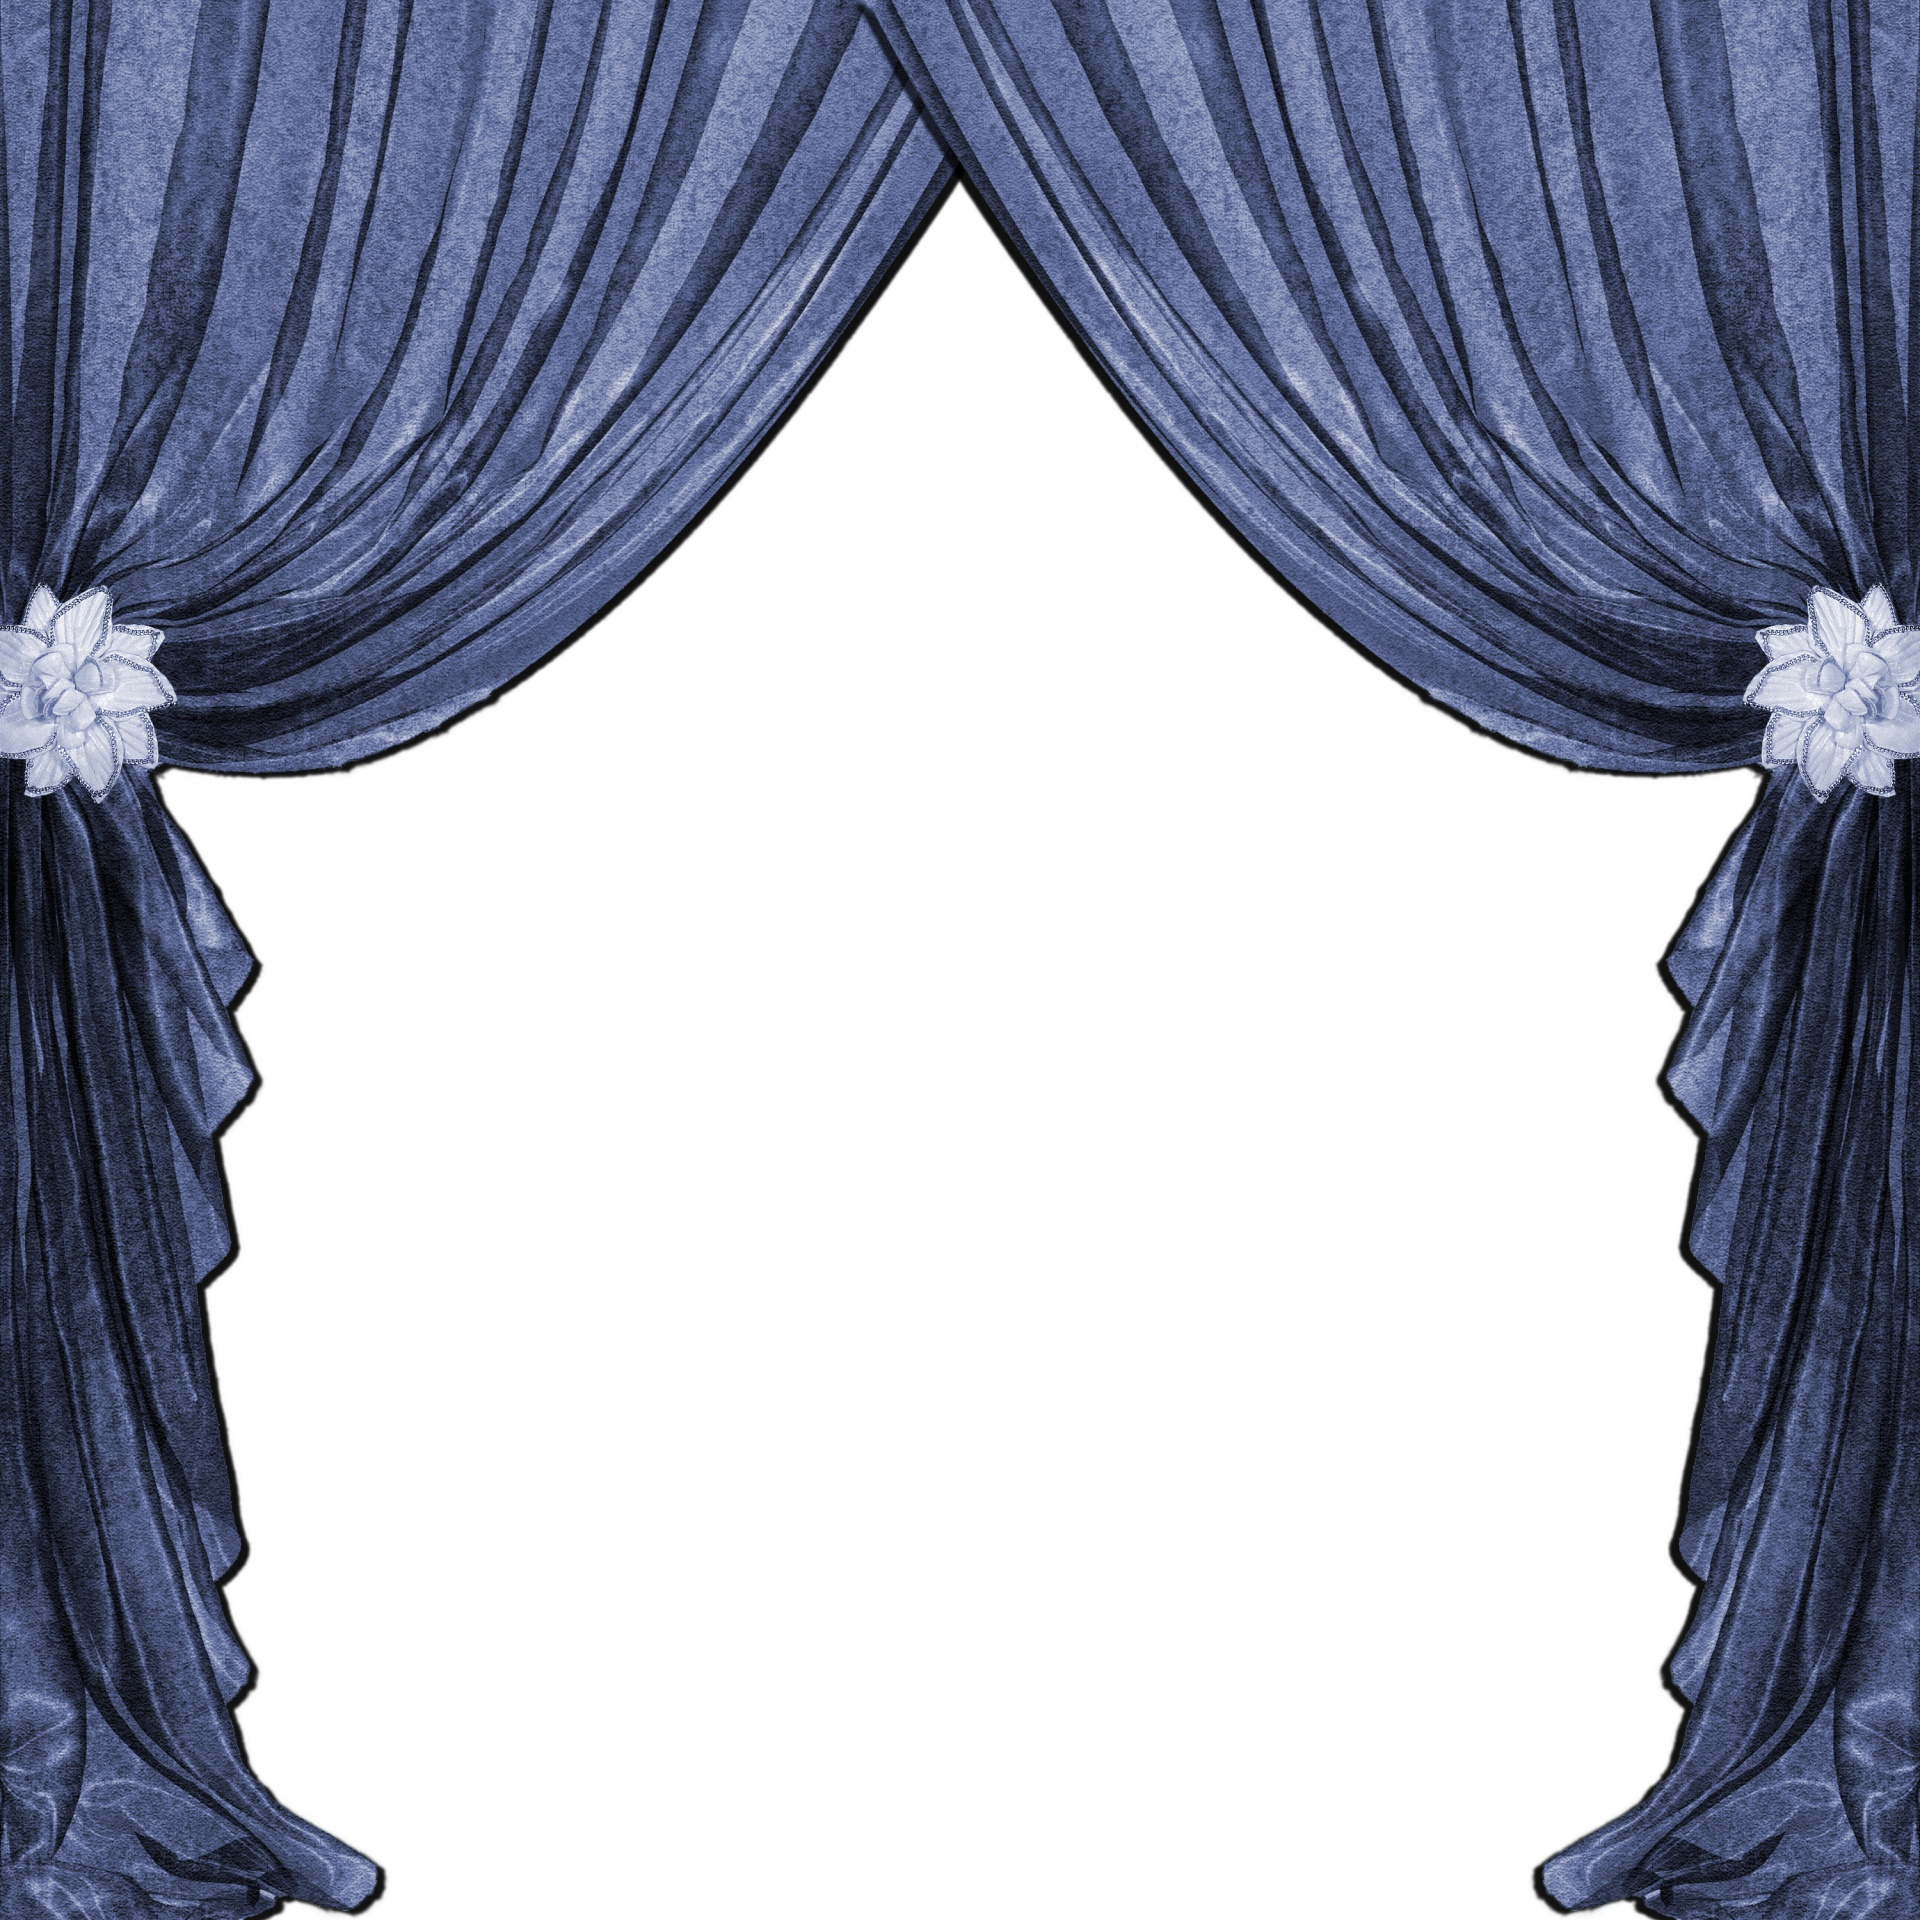 Drapes curtains free stock. Curtain clipart blue curtain clipart royalty free